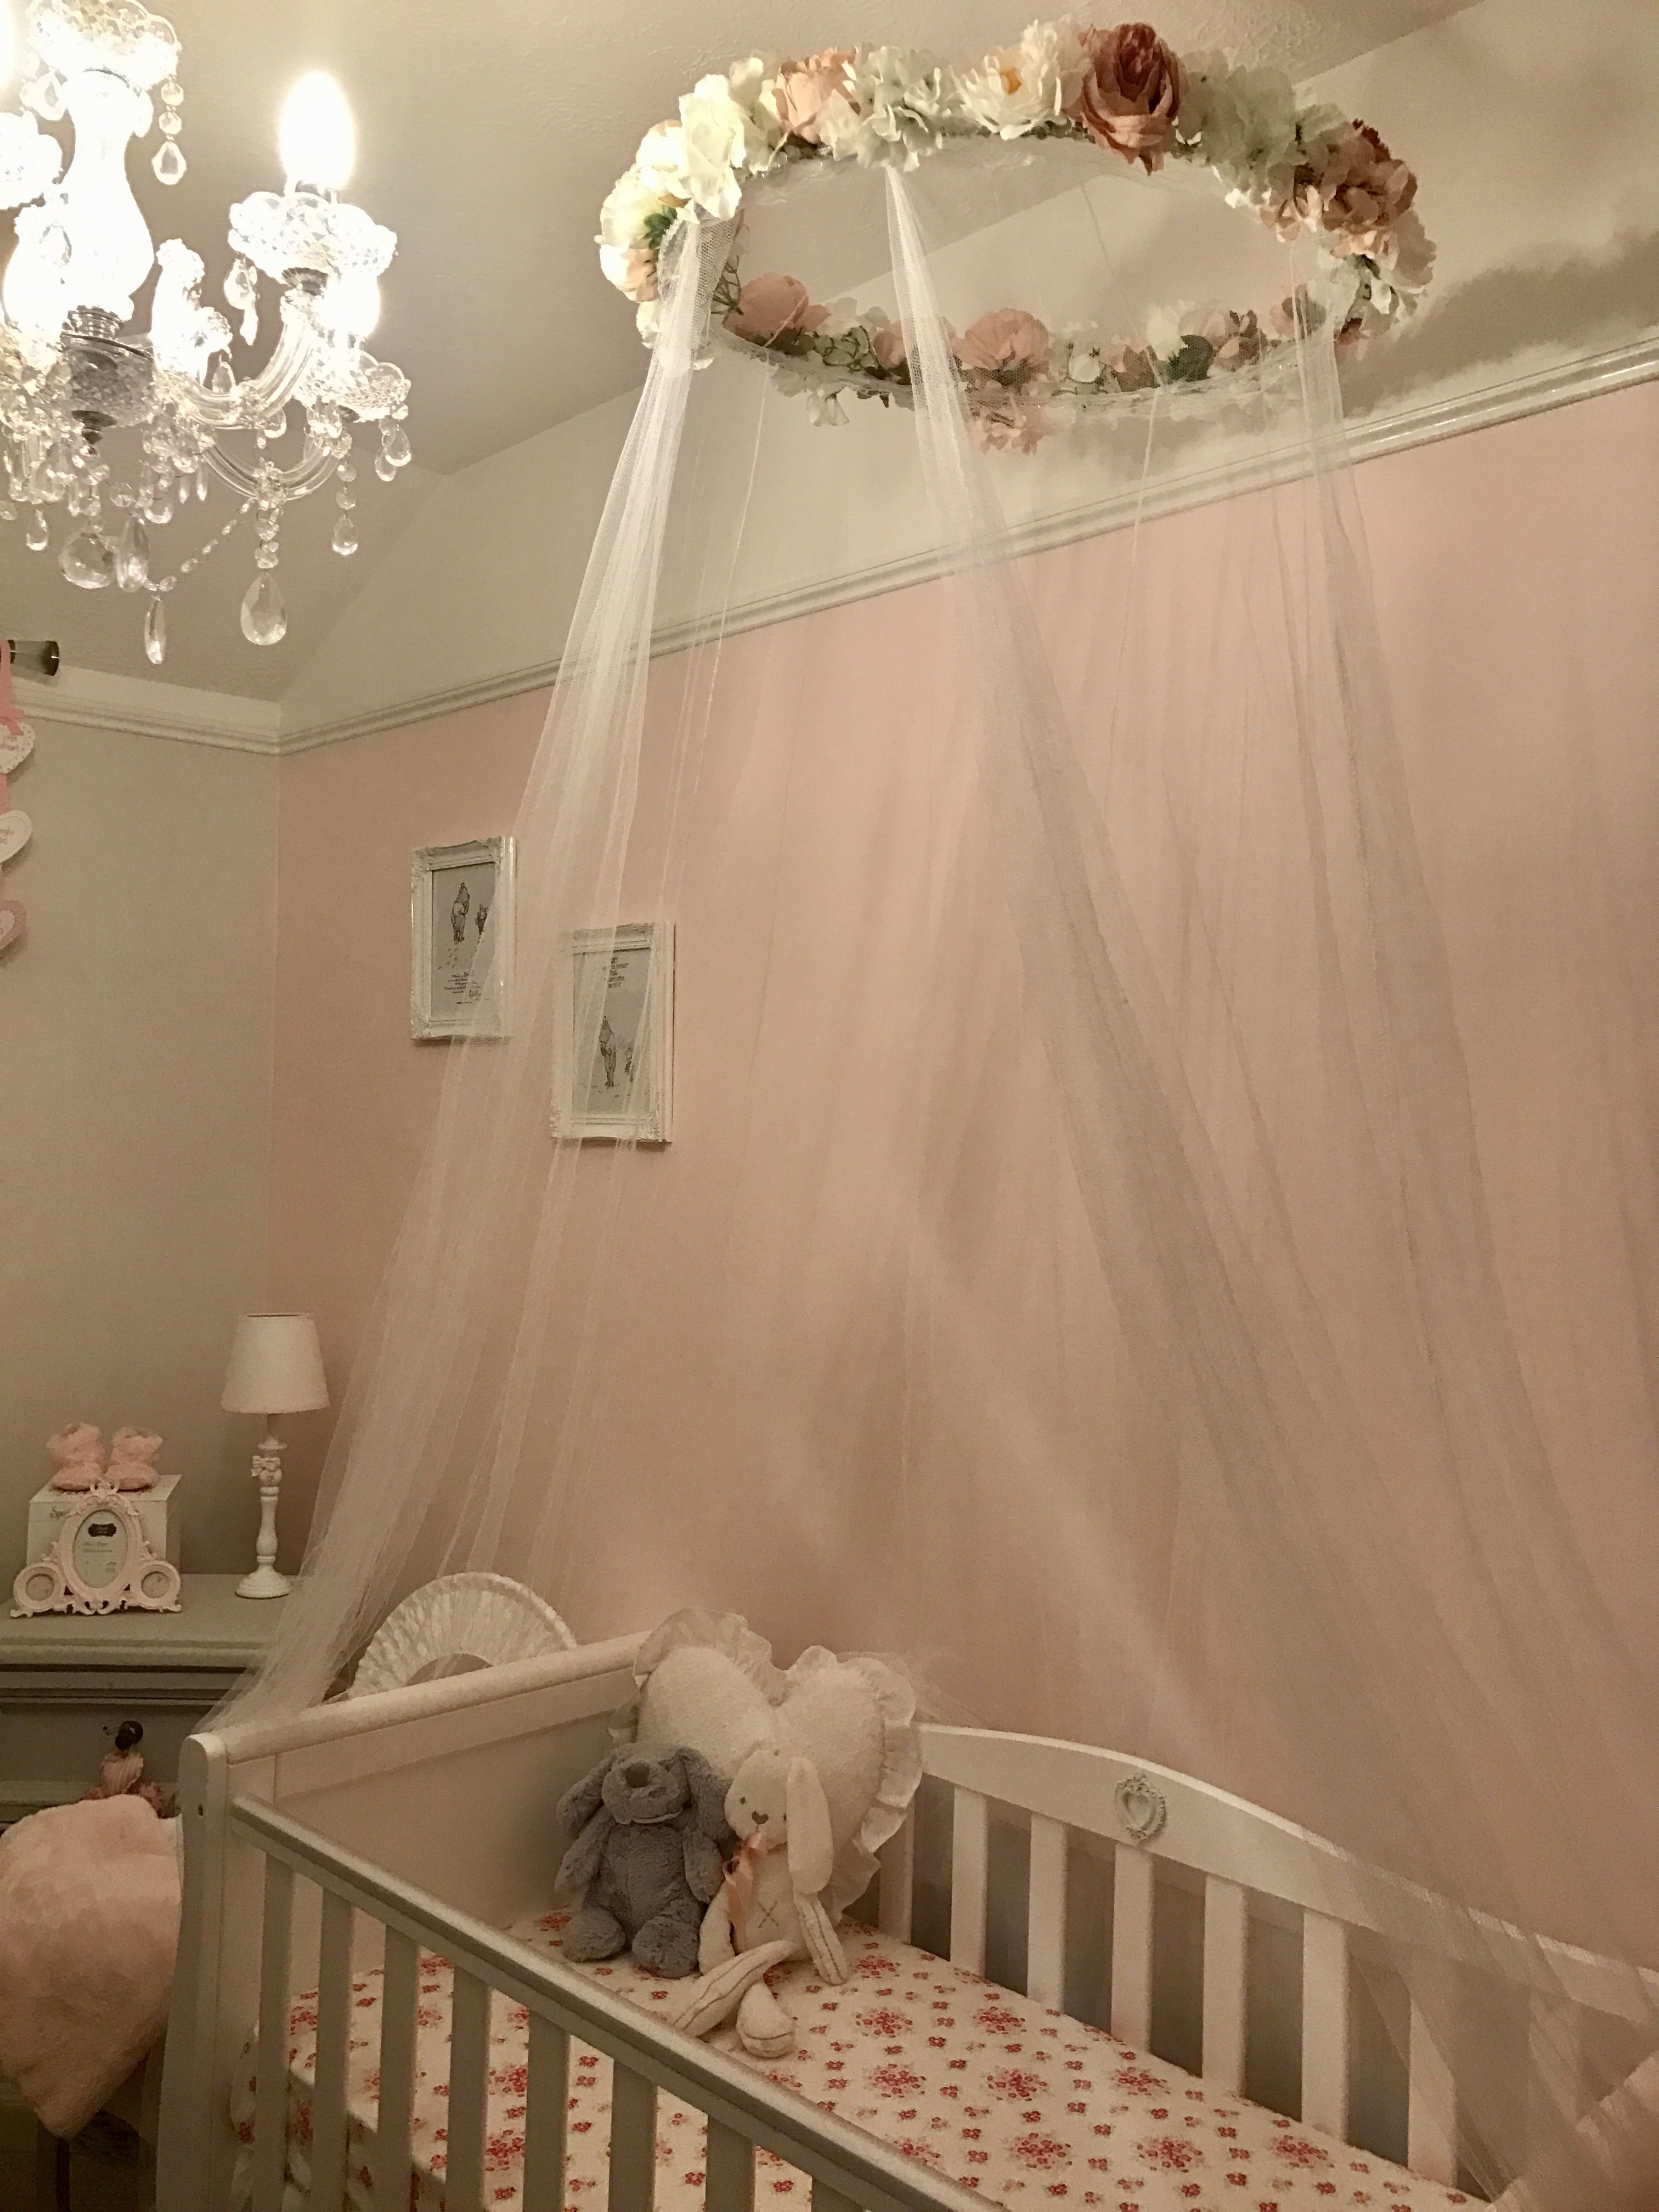 Pin by Ashleyb191 . on Nails | Baby room themes, Baby ...